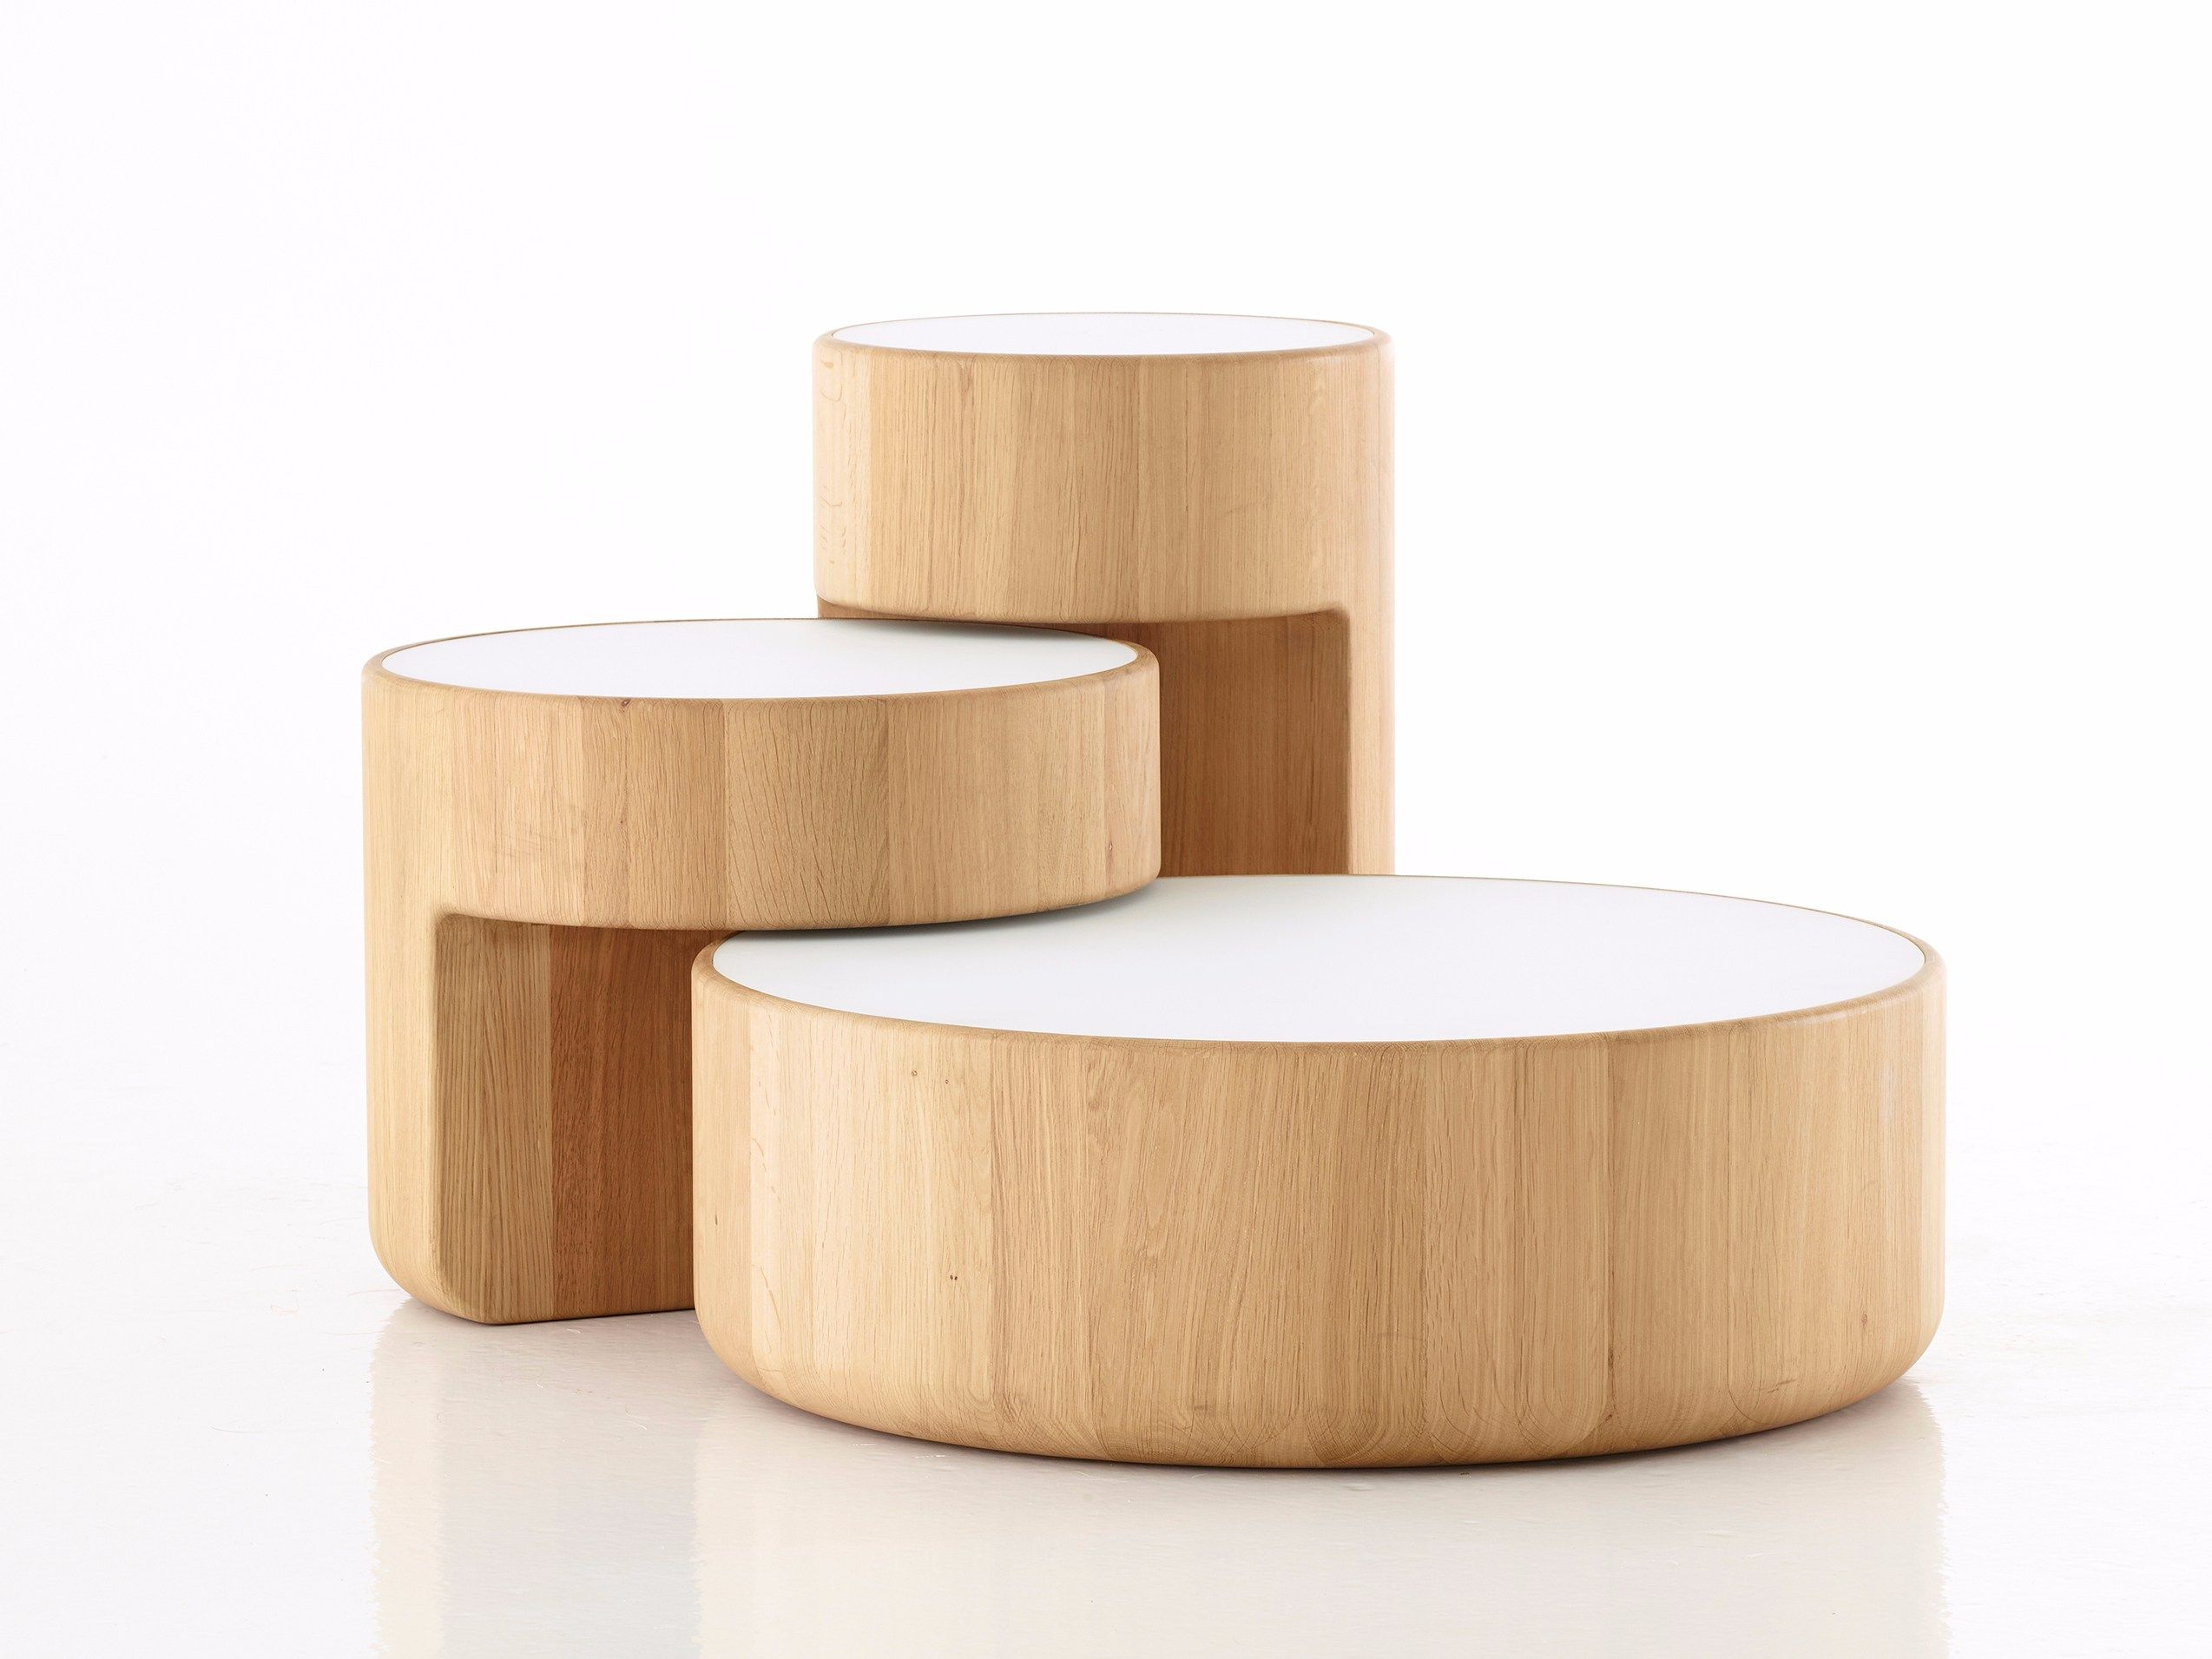 Domani com media catalog product c a cassina schroeder1 side table jpg downloader - Low Oak Coffee Table Levels Coffee Table Per Use